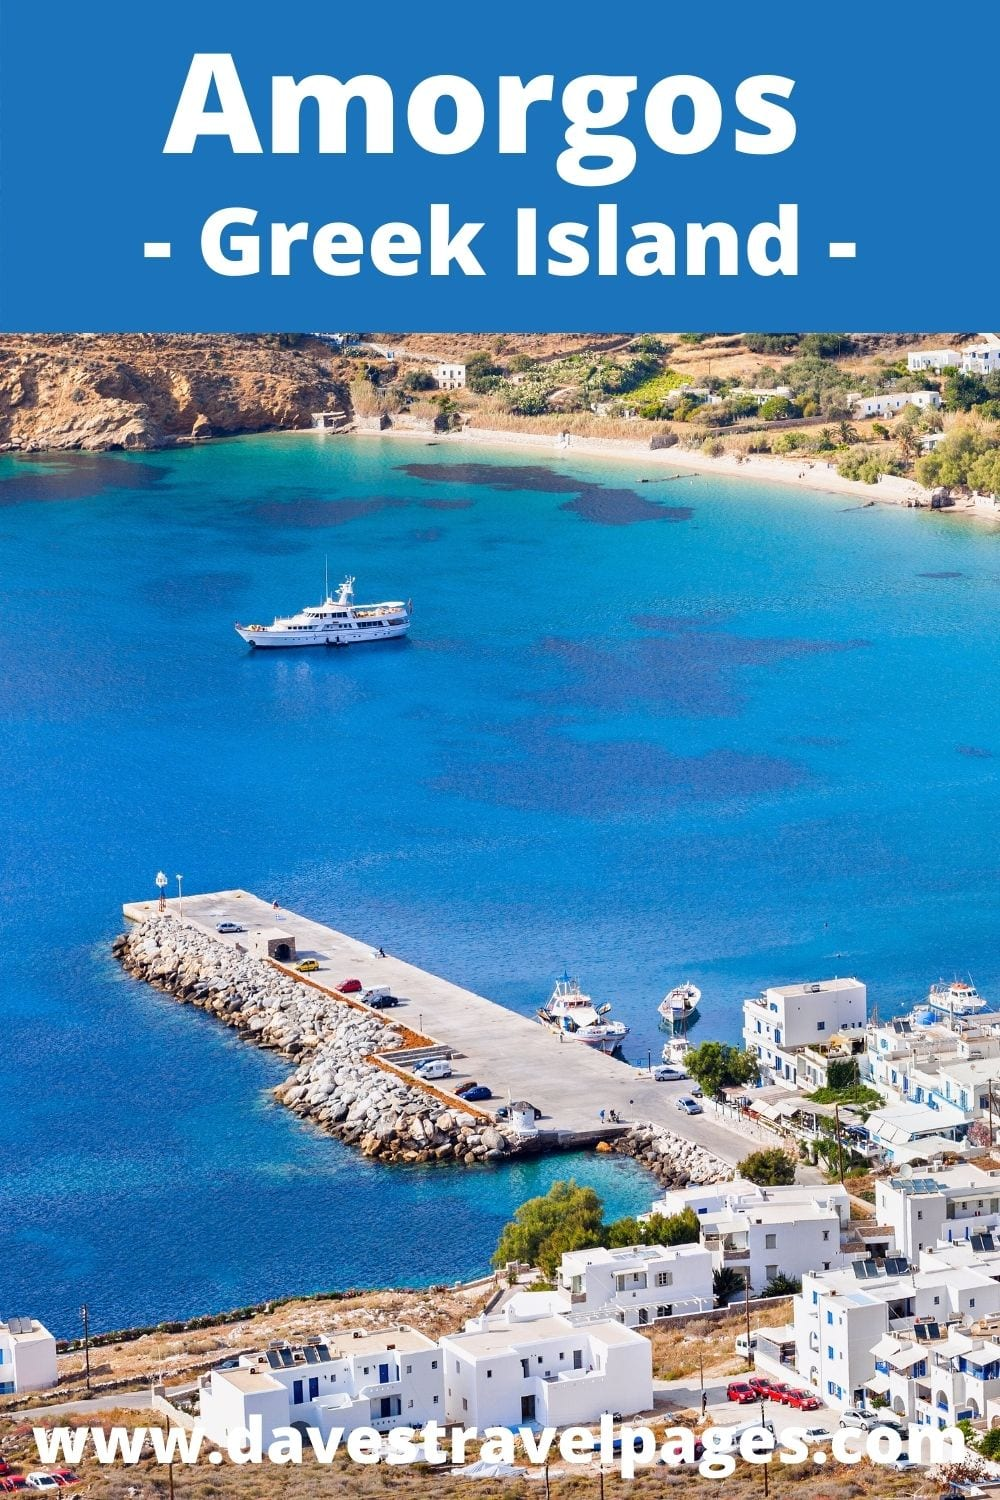 How to get from Mykonos to Amorgos Greek island